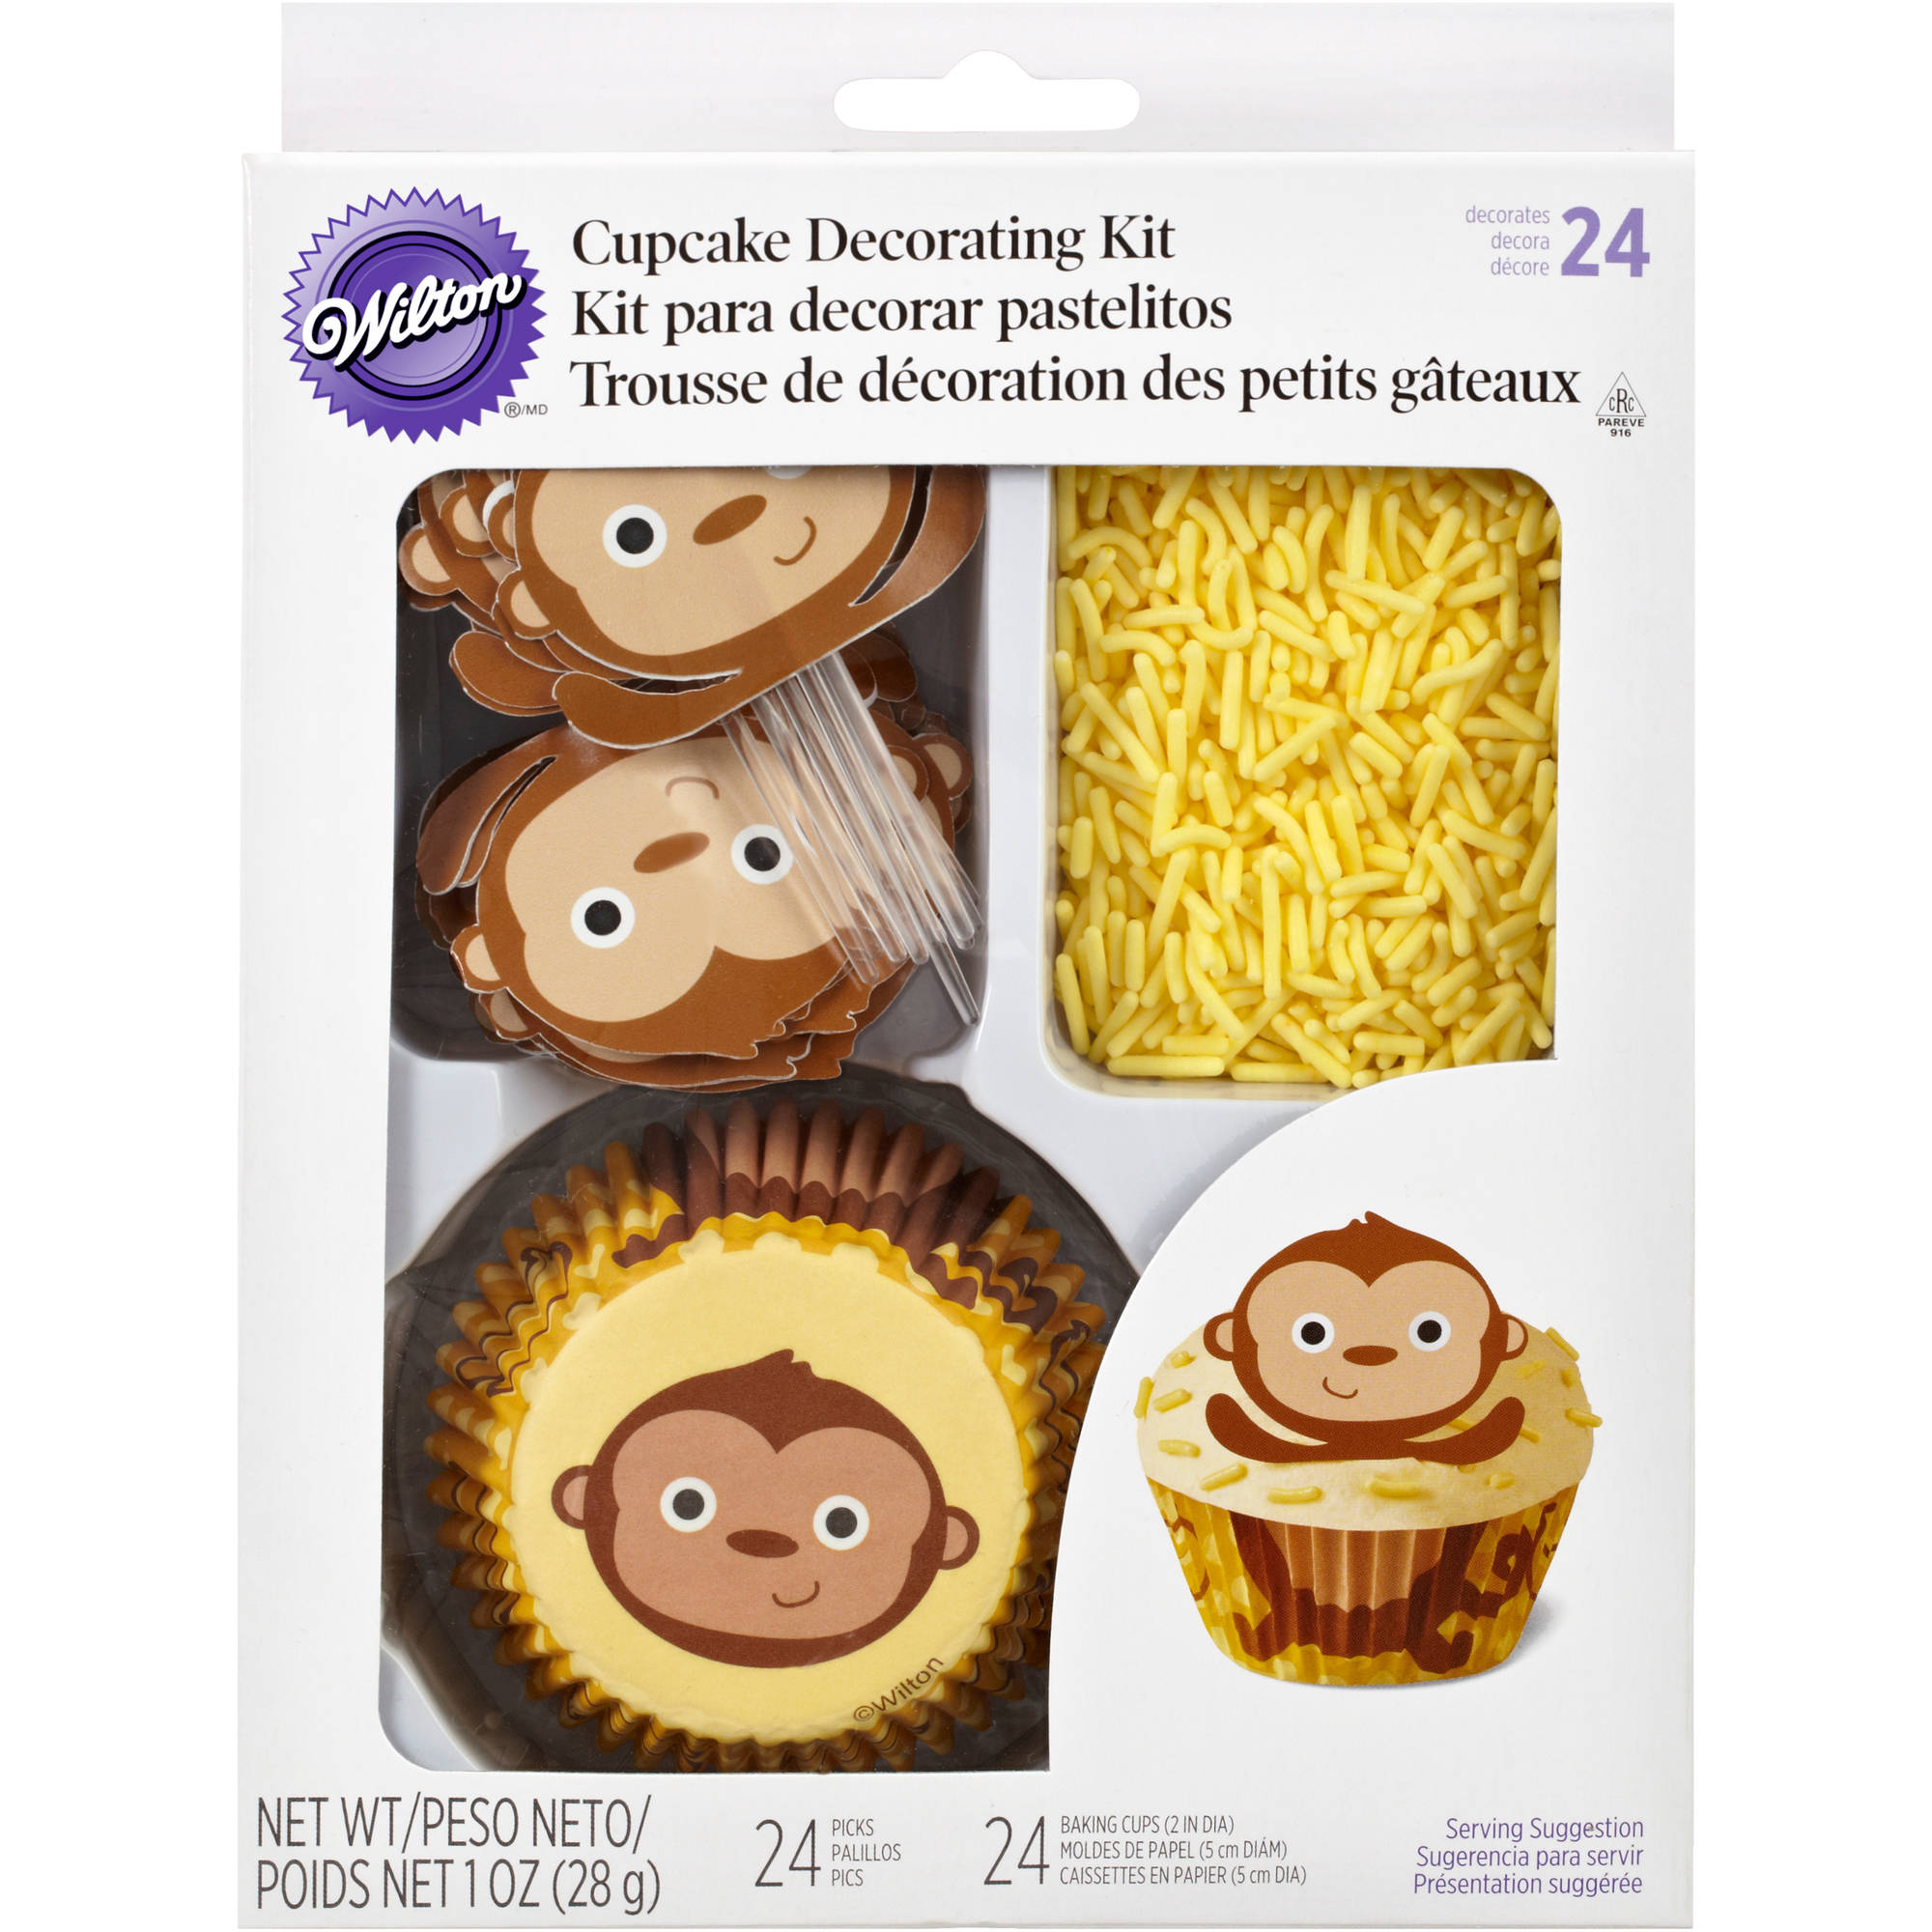 Wilton Cupcake Decorating Kit, Monkey 24 ct. 415-2198